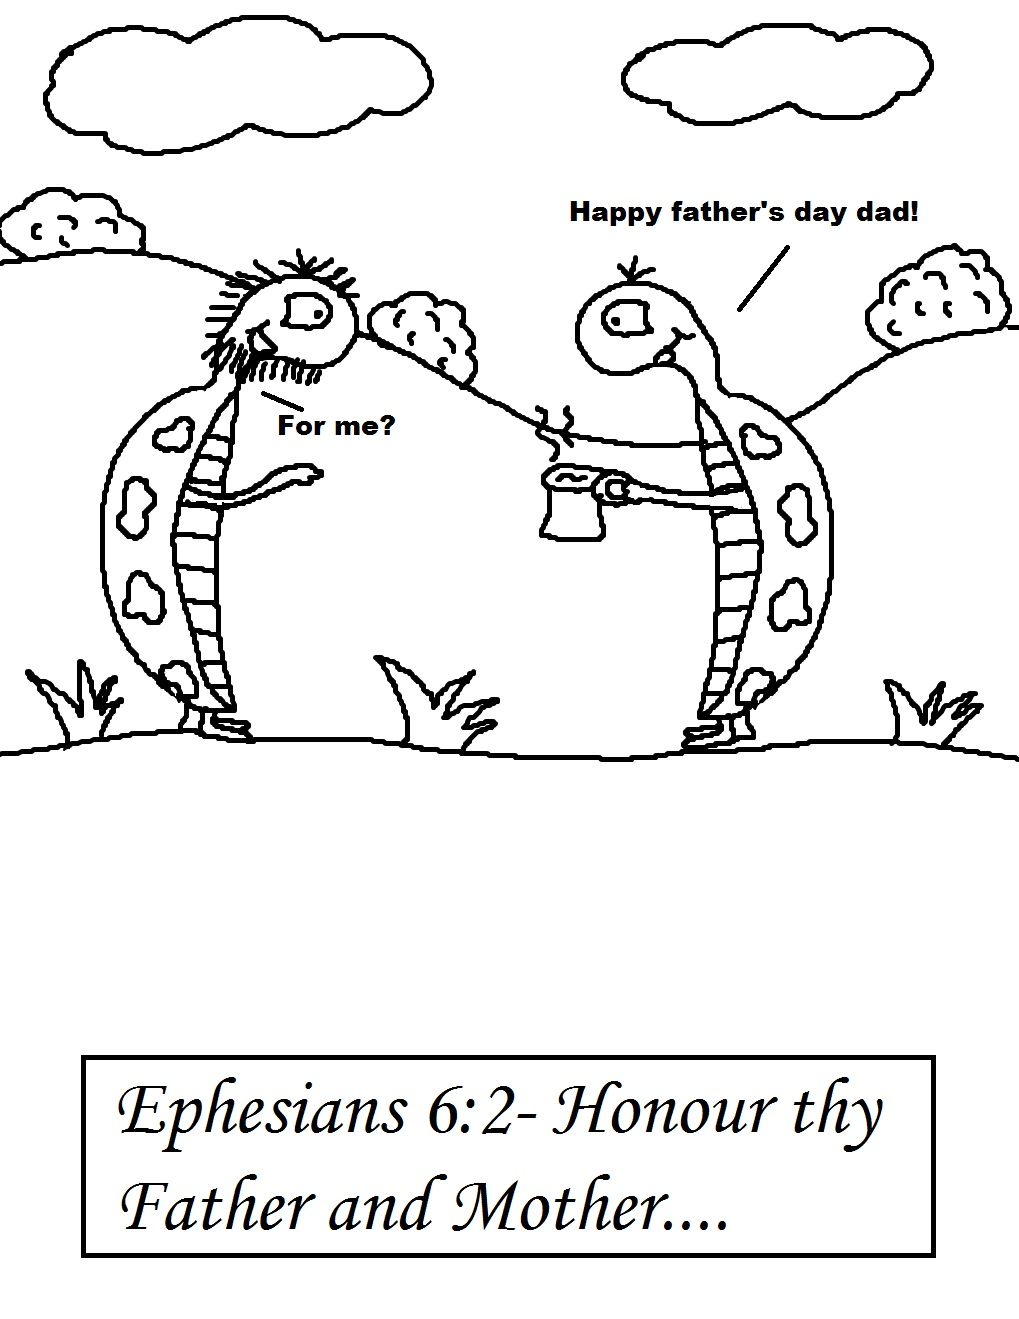 Childrens fathers day coloring pages - Father S Day Coloring Page